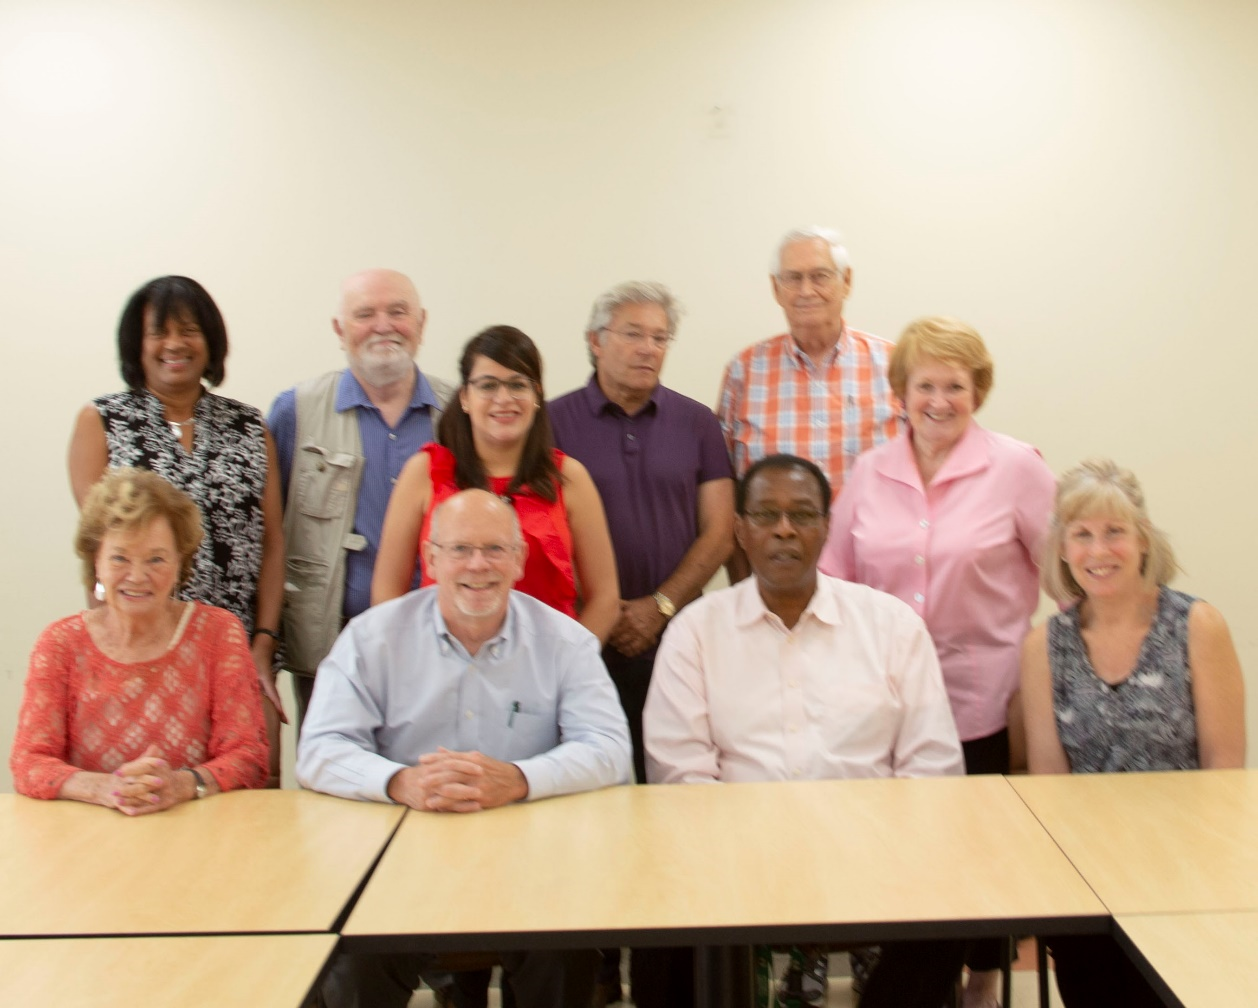 Council on Aging Board Members